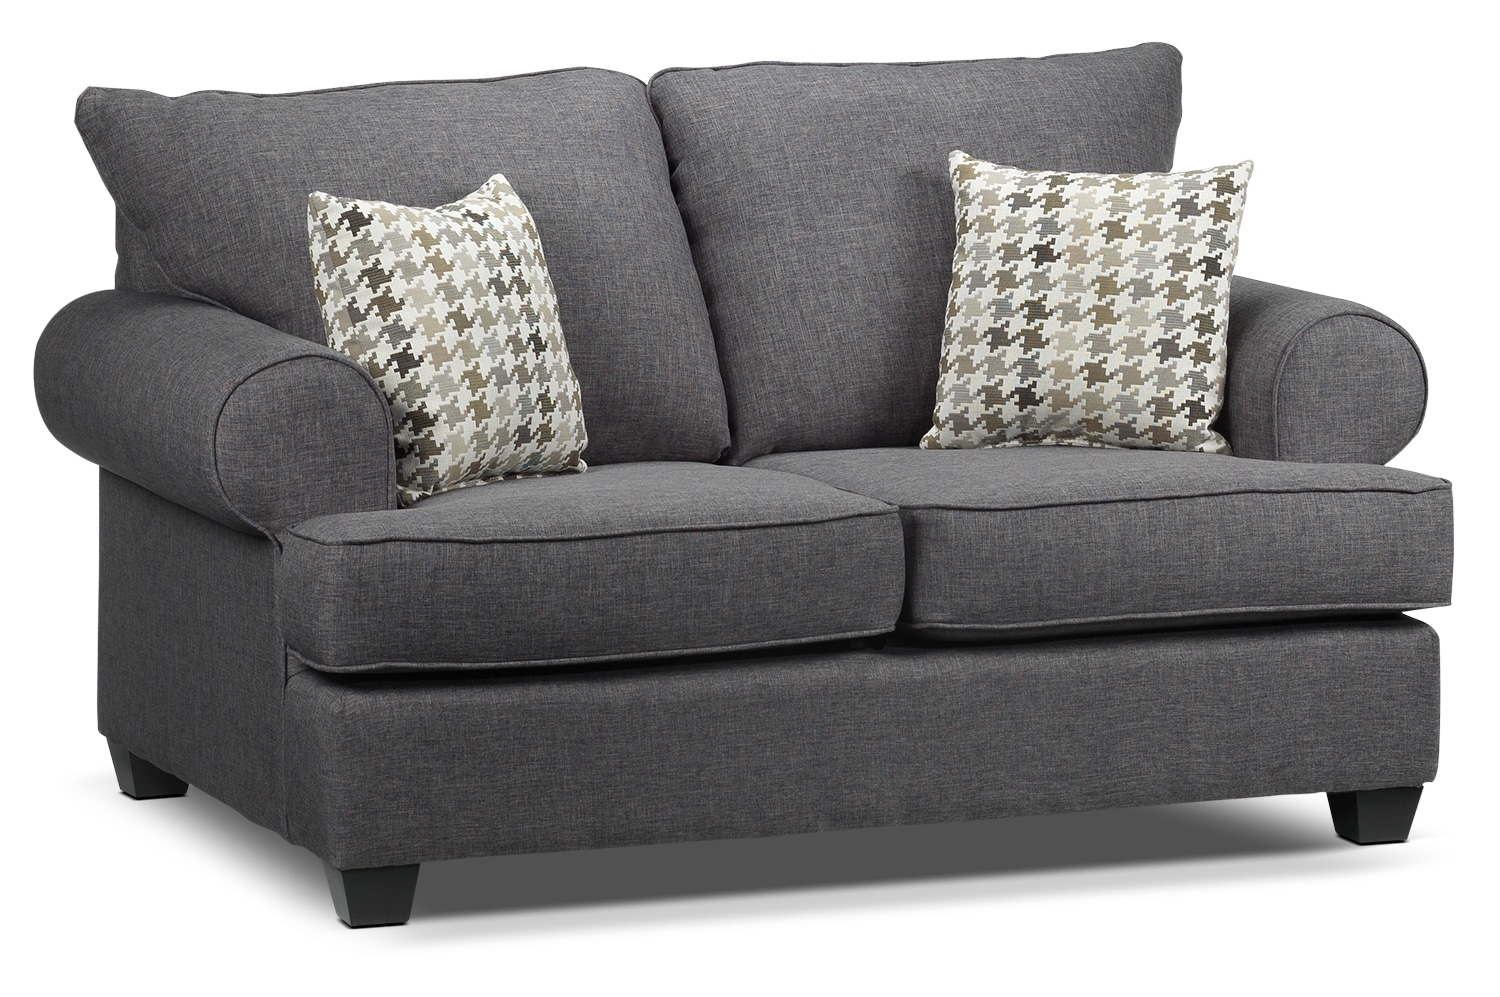 Living Room Furniture - Lexie Loveseat - Gray